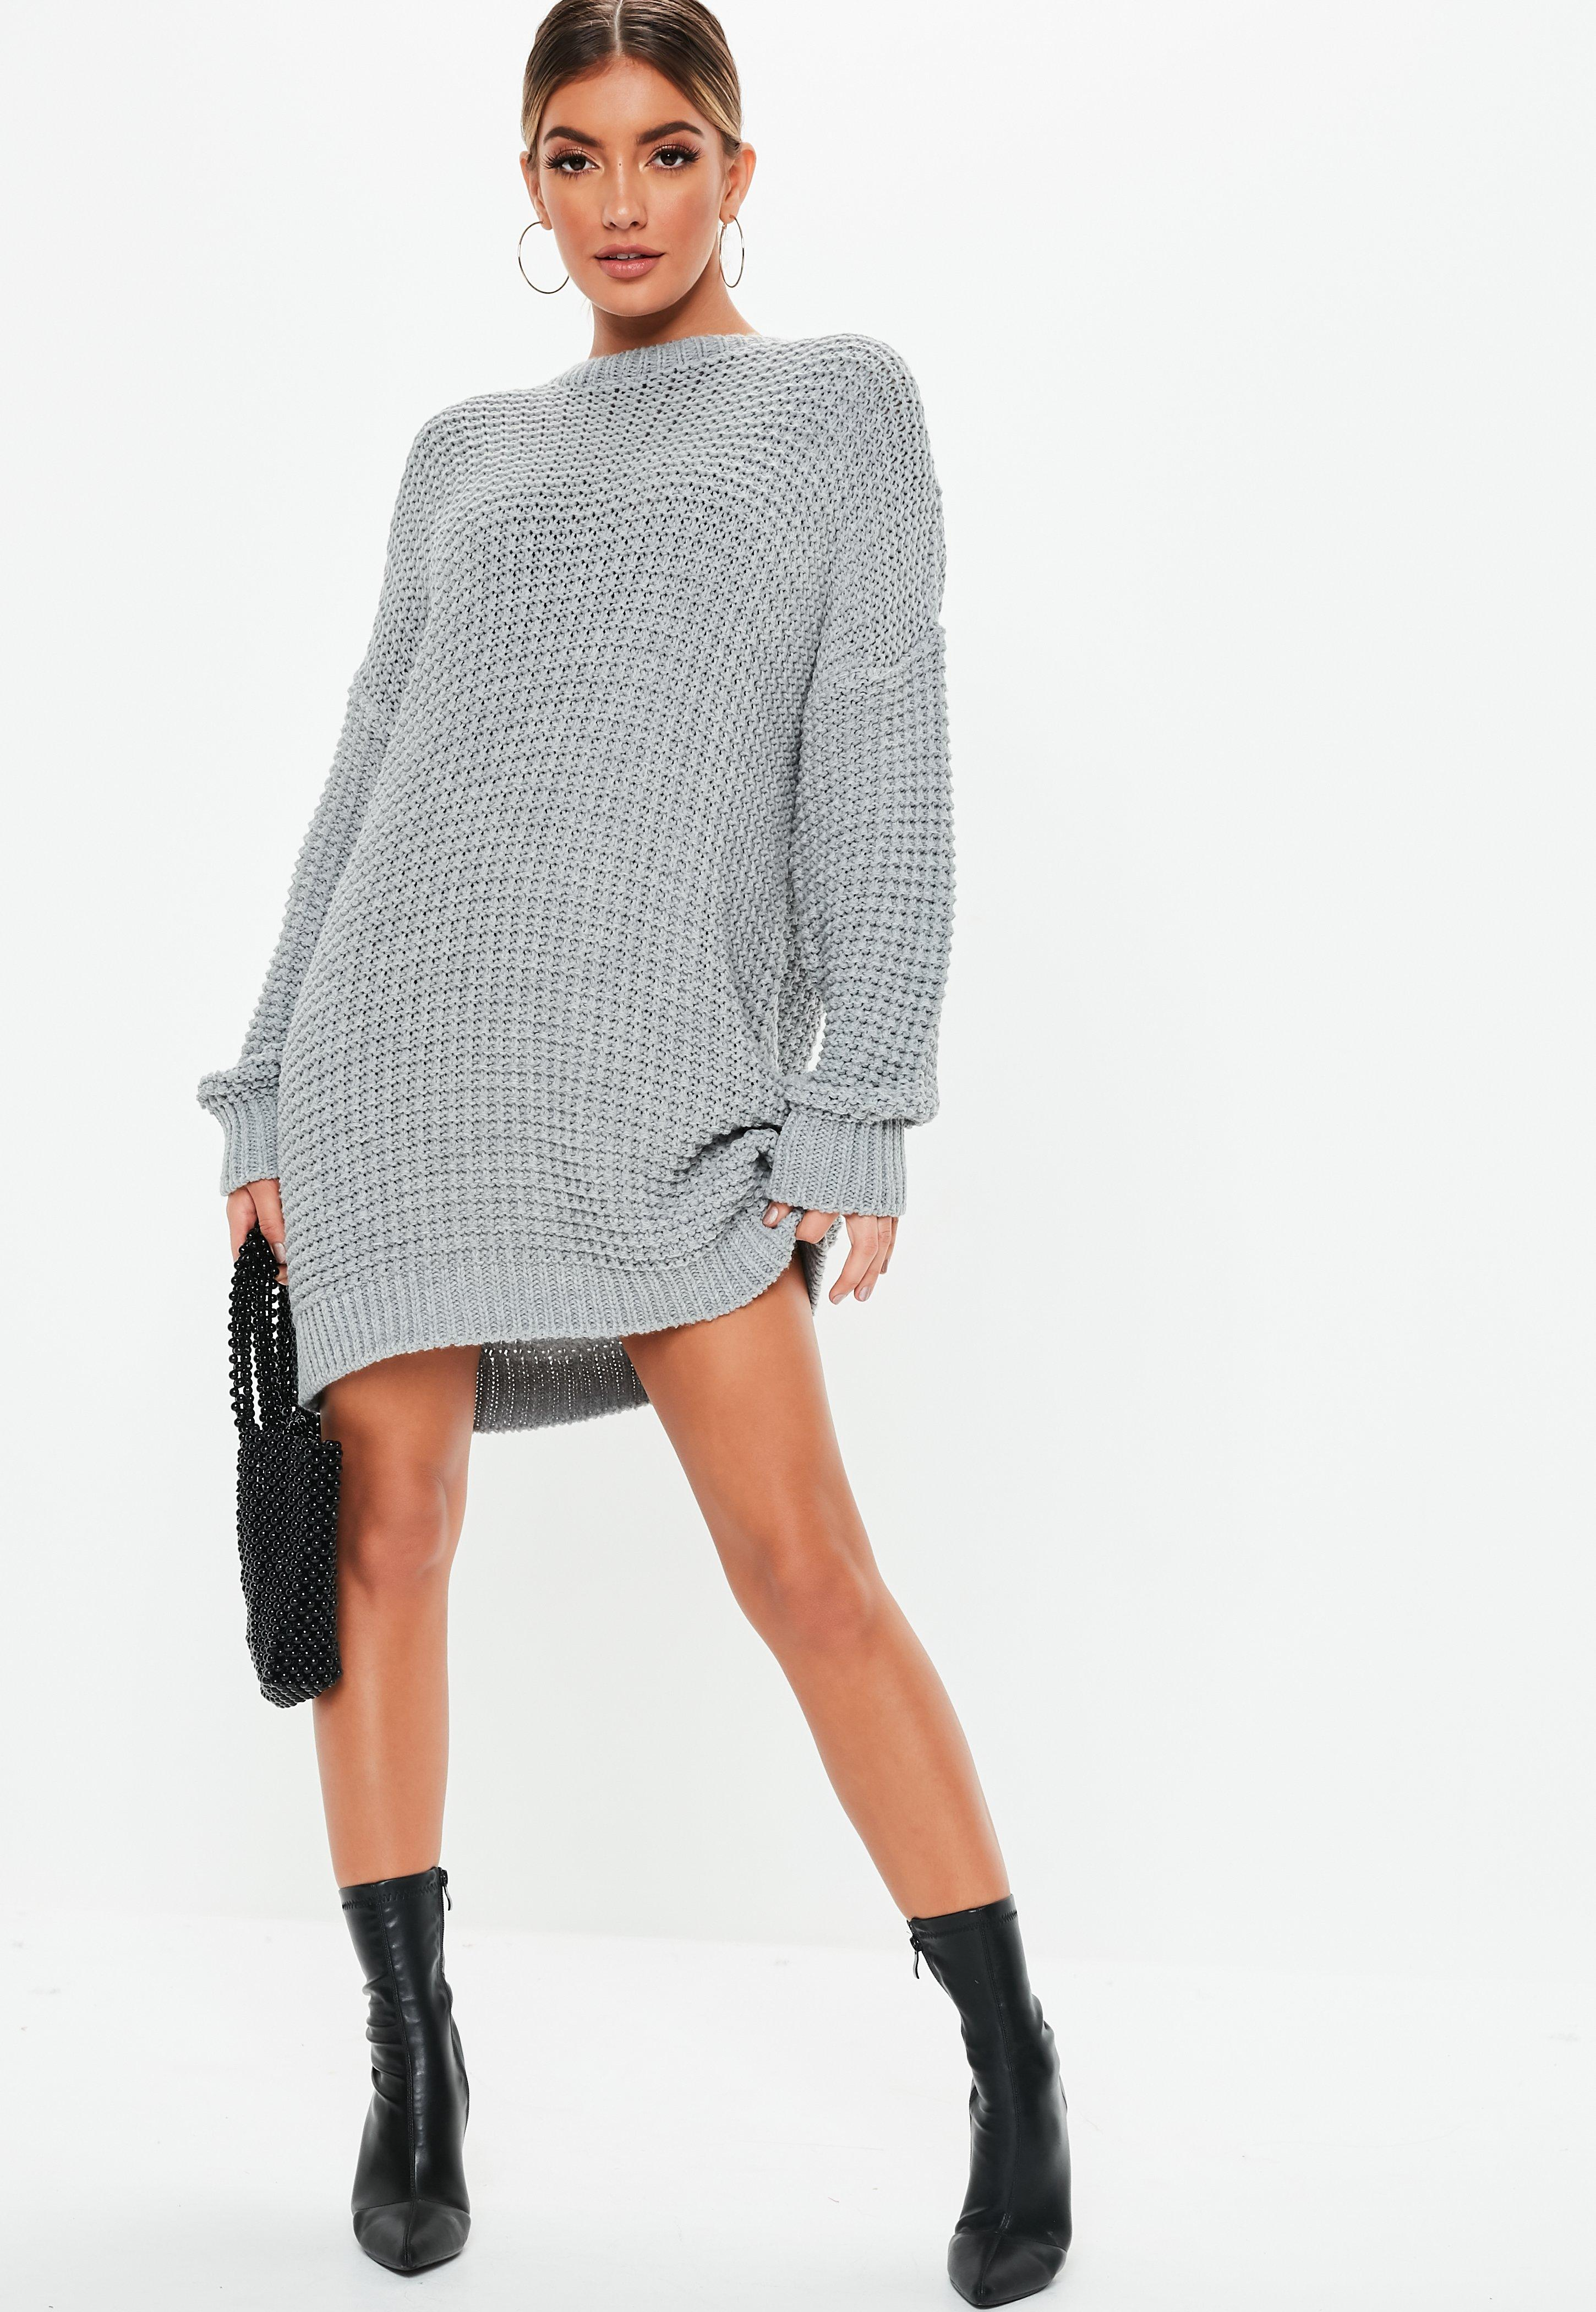 26eeac0c3da4 Sweater Dresses - Oversized Knitted Dresses | Missguided